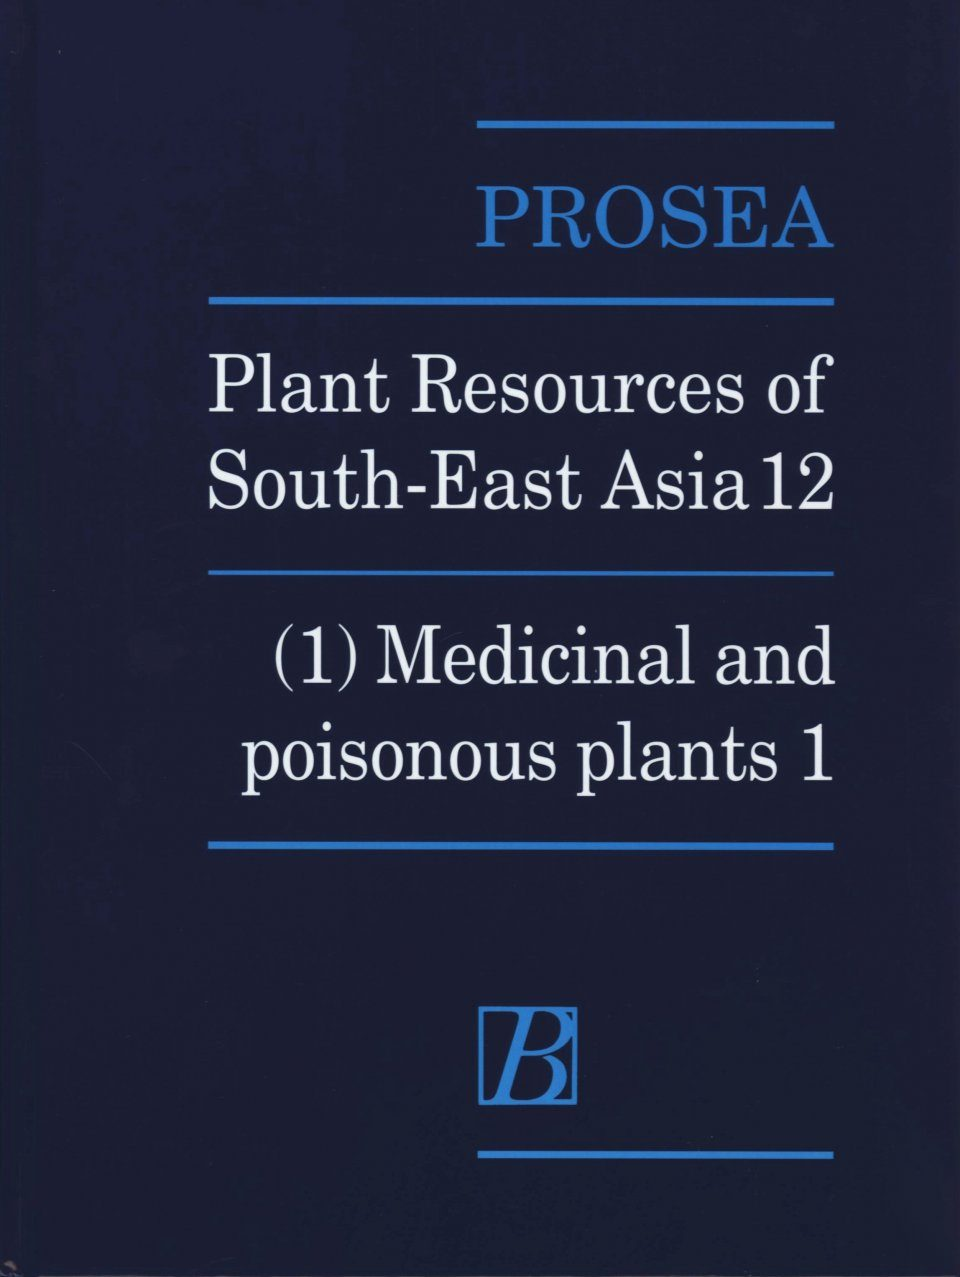 PROSEA, Volume 12/1: Medicinal and Poisonous Plants 1